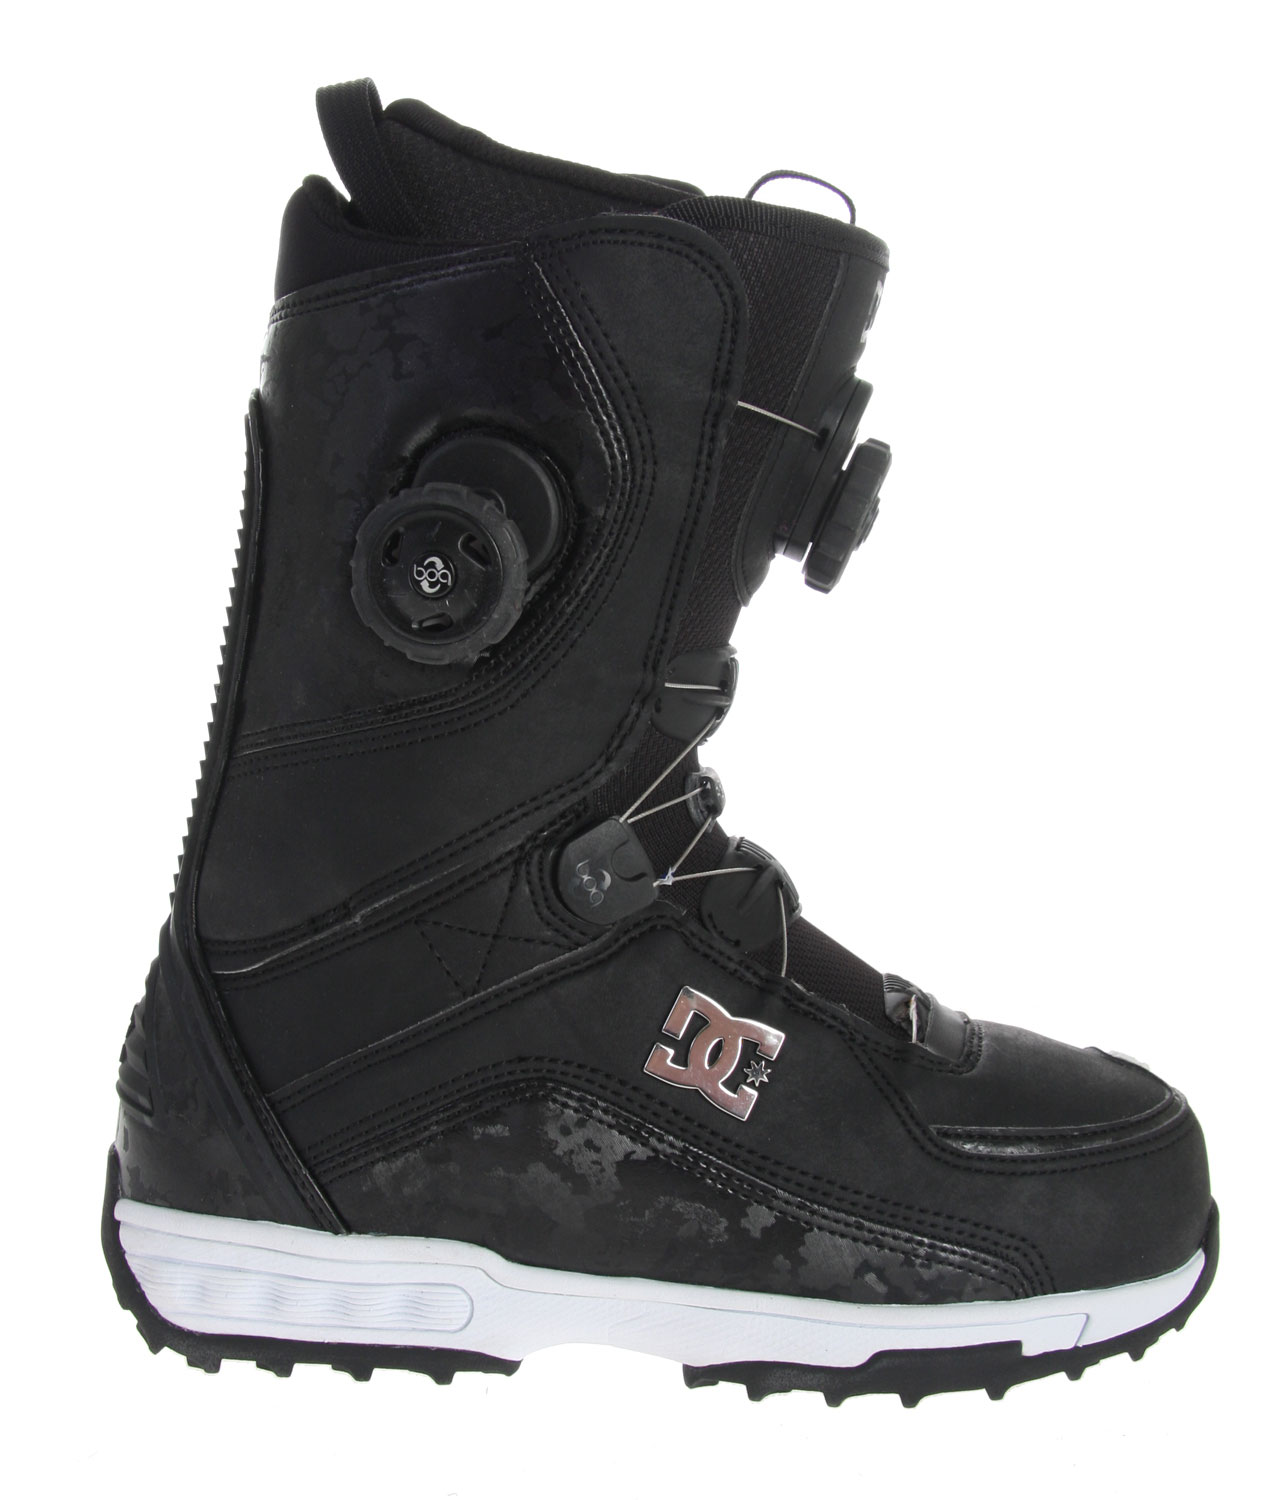 Snowboard A classic favorite, back and better. You recognize the name, but the new fit and performance takes the redesigned Judge boot to another level. Designed to be versatile, the always popular judge can be ridden anywhere on the hill.Key Features of the DC Judge Boa Snowboard Boots: Water Resistant Synthetic Leather Upper Boa Technology Focus System Ergonomically Engineered 3D Tongue Articulated Upper Cuff Internal Ankle Harness Welded Backstay Molded EVA Midsole Functional Sole Design Flex: 7 - $158.95